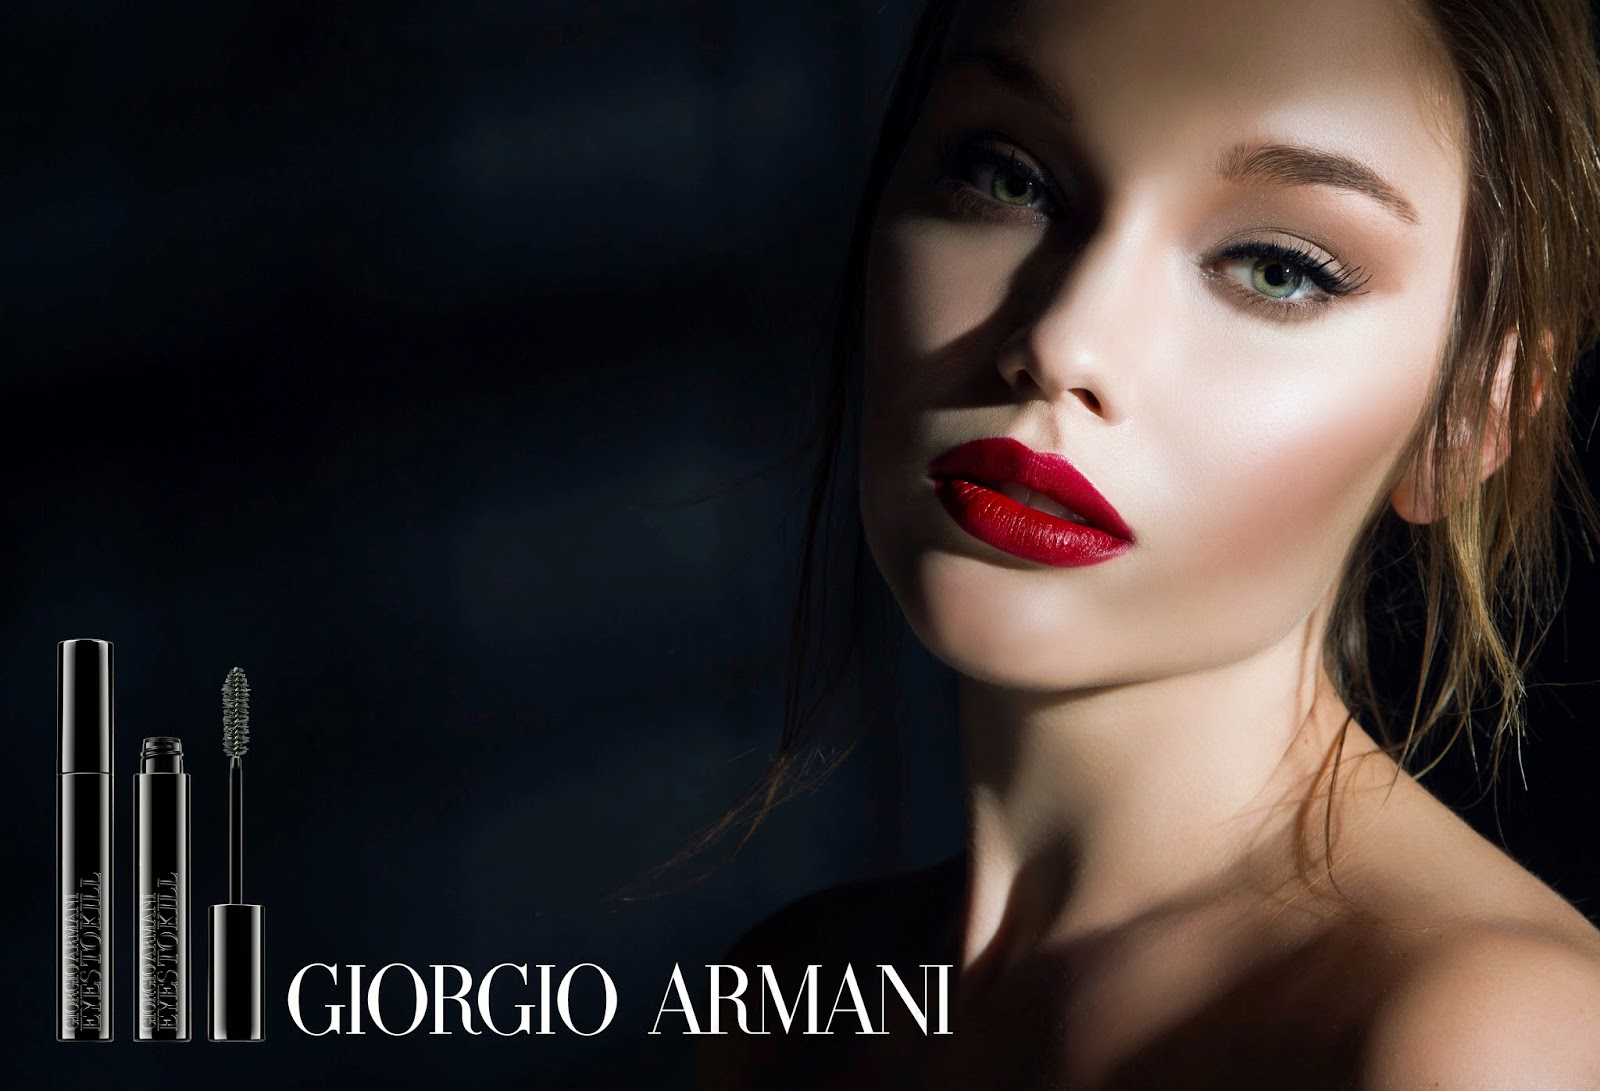 GIORGIO ARMANI EYES TO KILL MASKARA